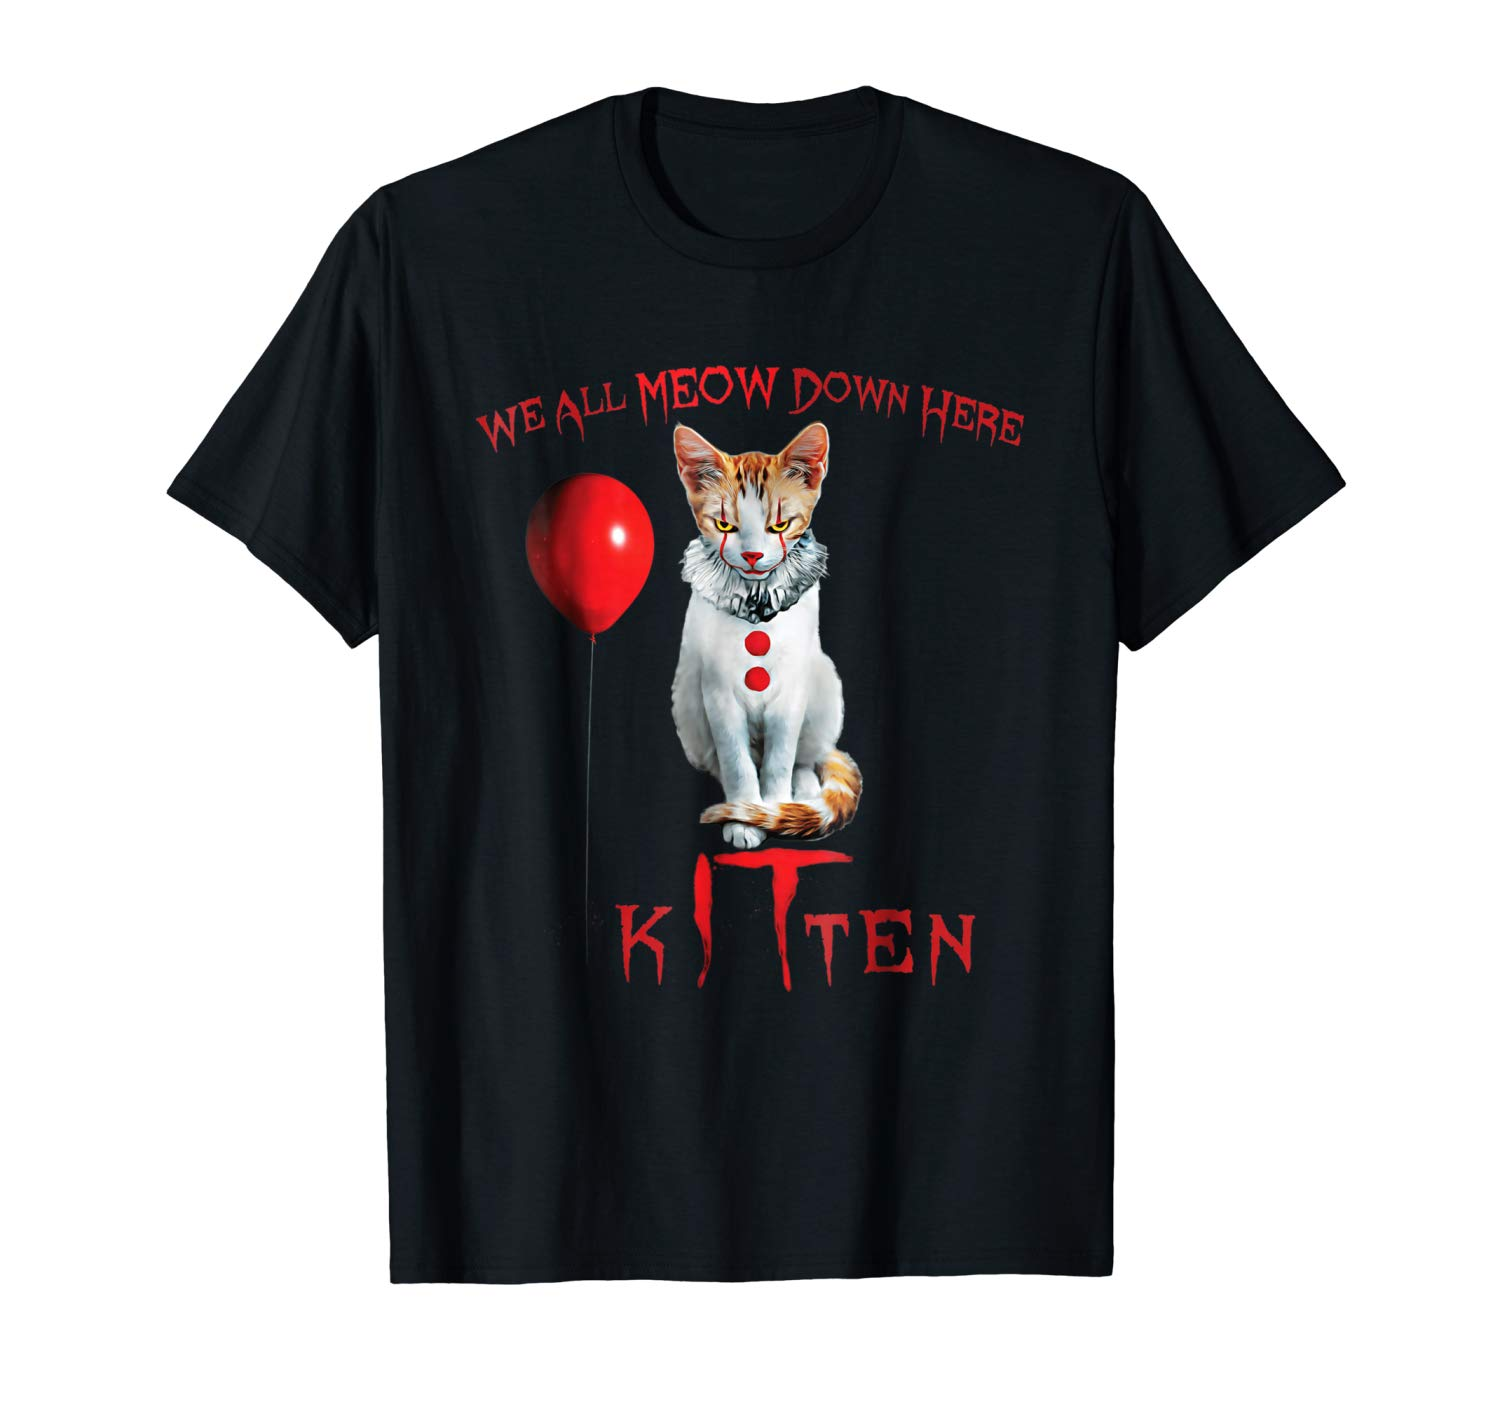 2019 Funny We All Meow Down Here Clown Cat Kitten T-Shirt Unisex Tee